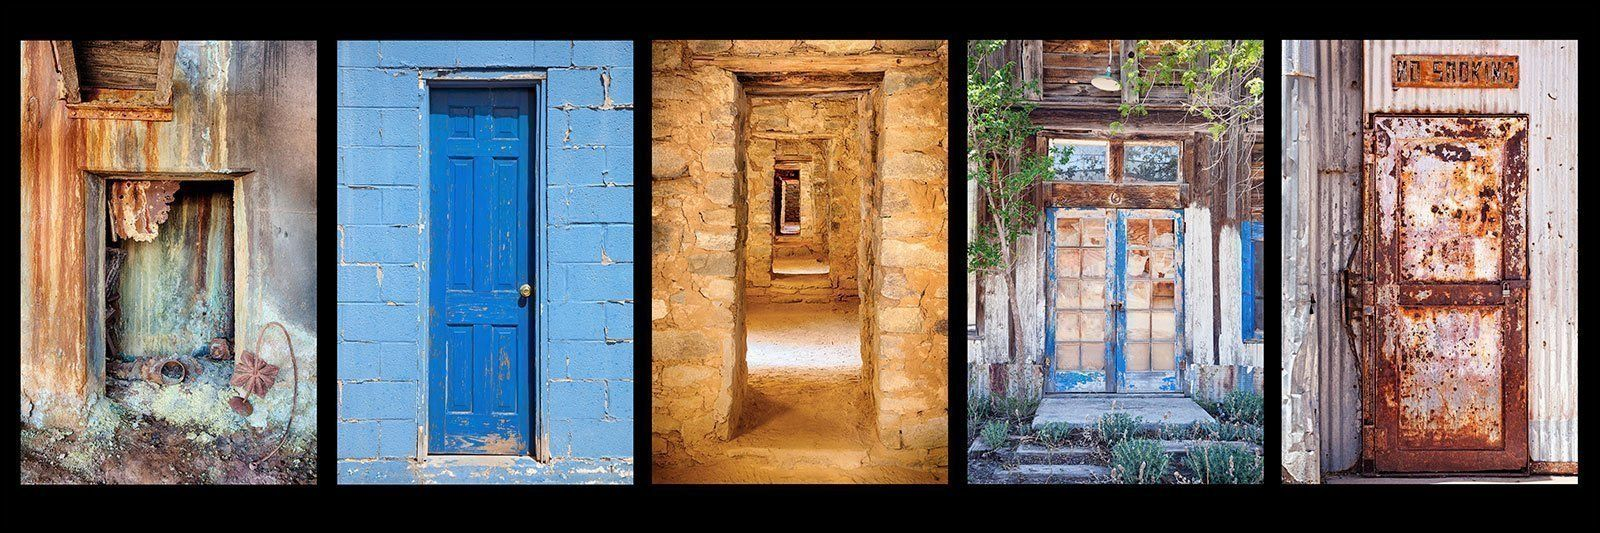 Panoramic photograph of a group of colorful southwest doors large